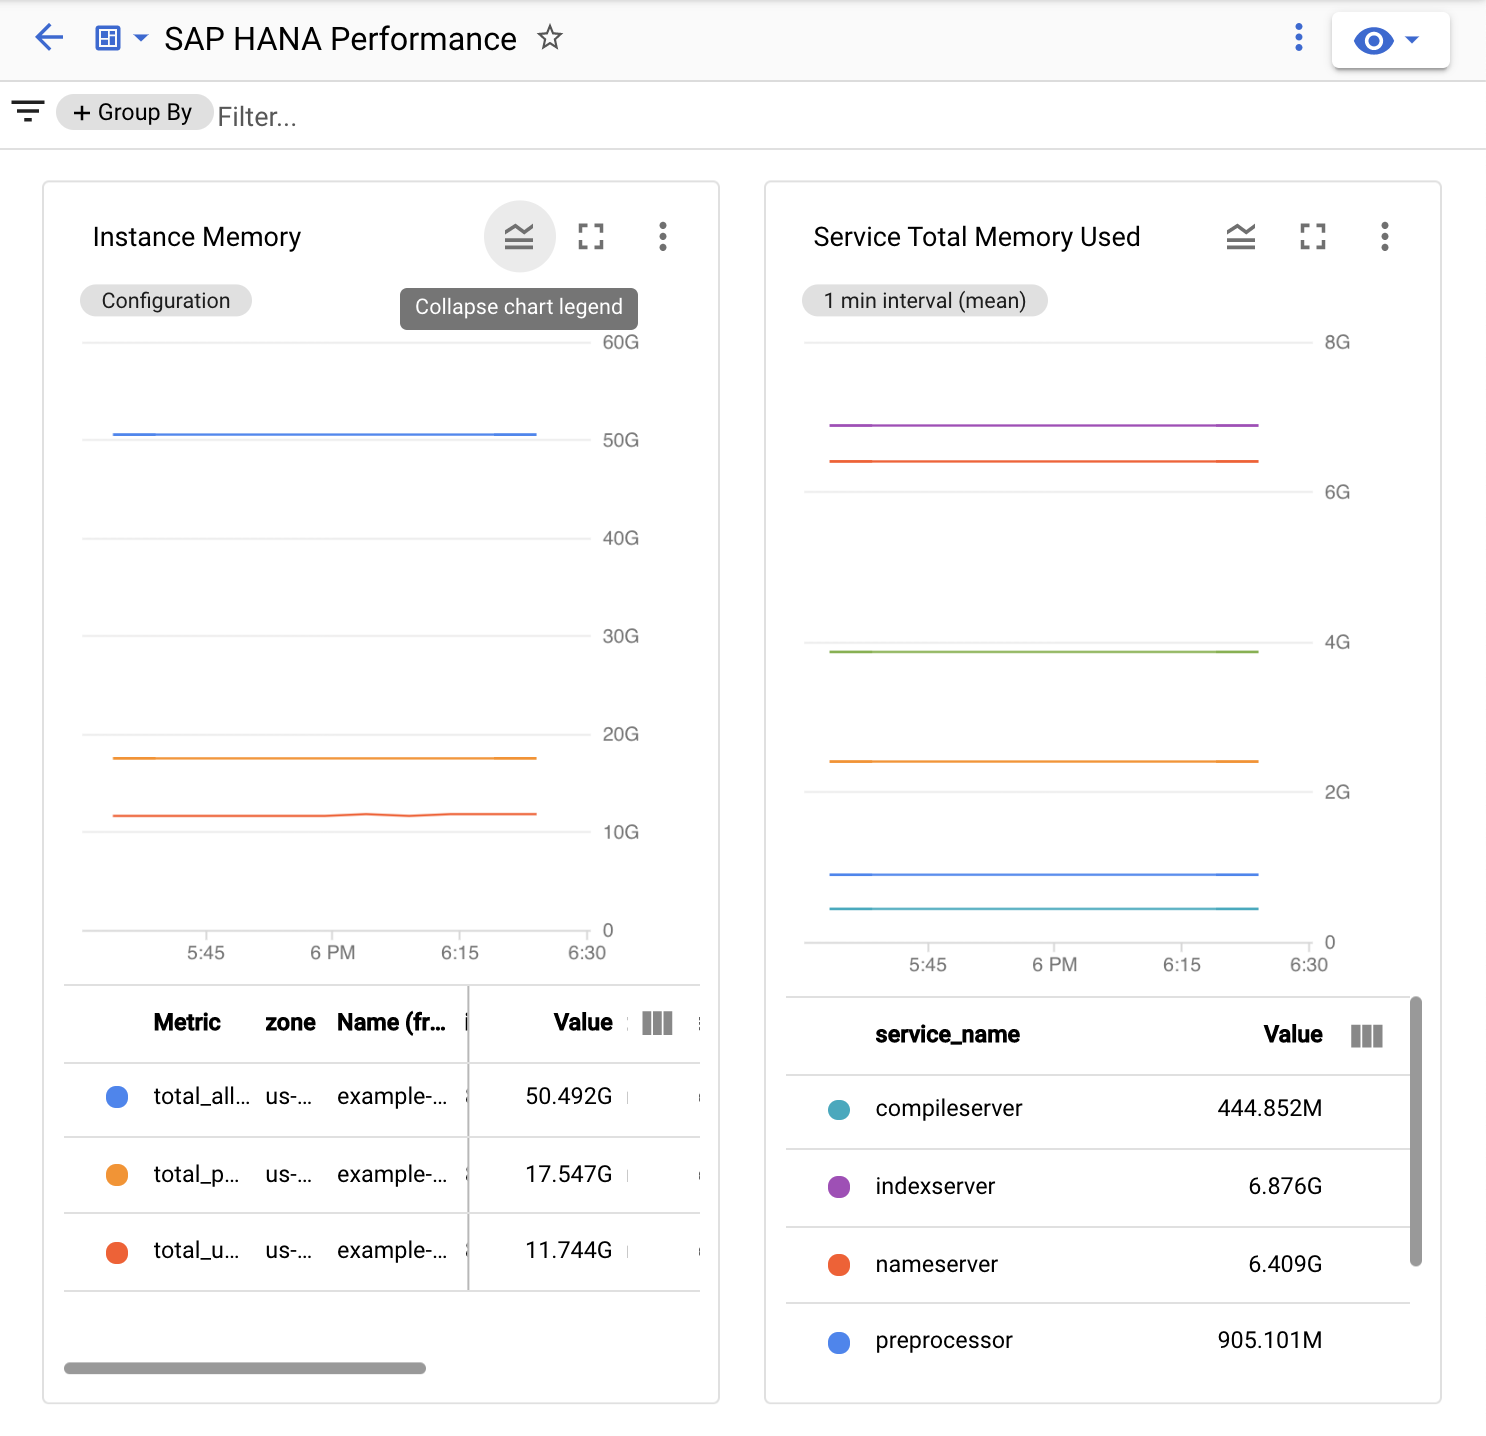 Screen capture shows the top two charts of the custom SAP HANA Perfromance dashboard in Monitoring